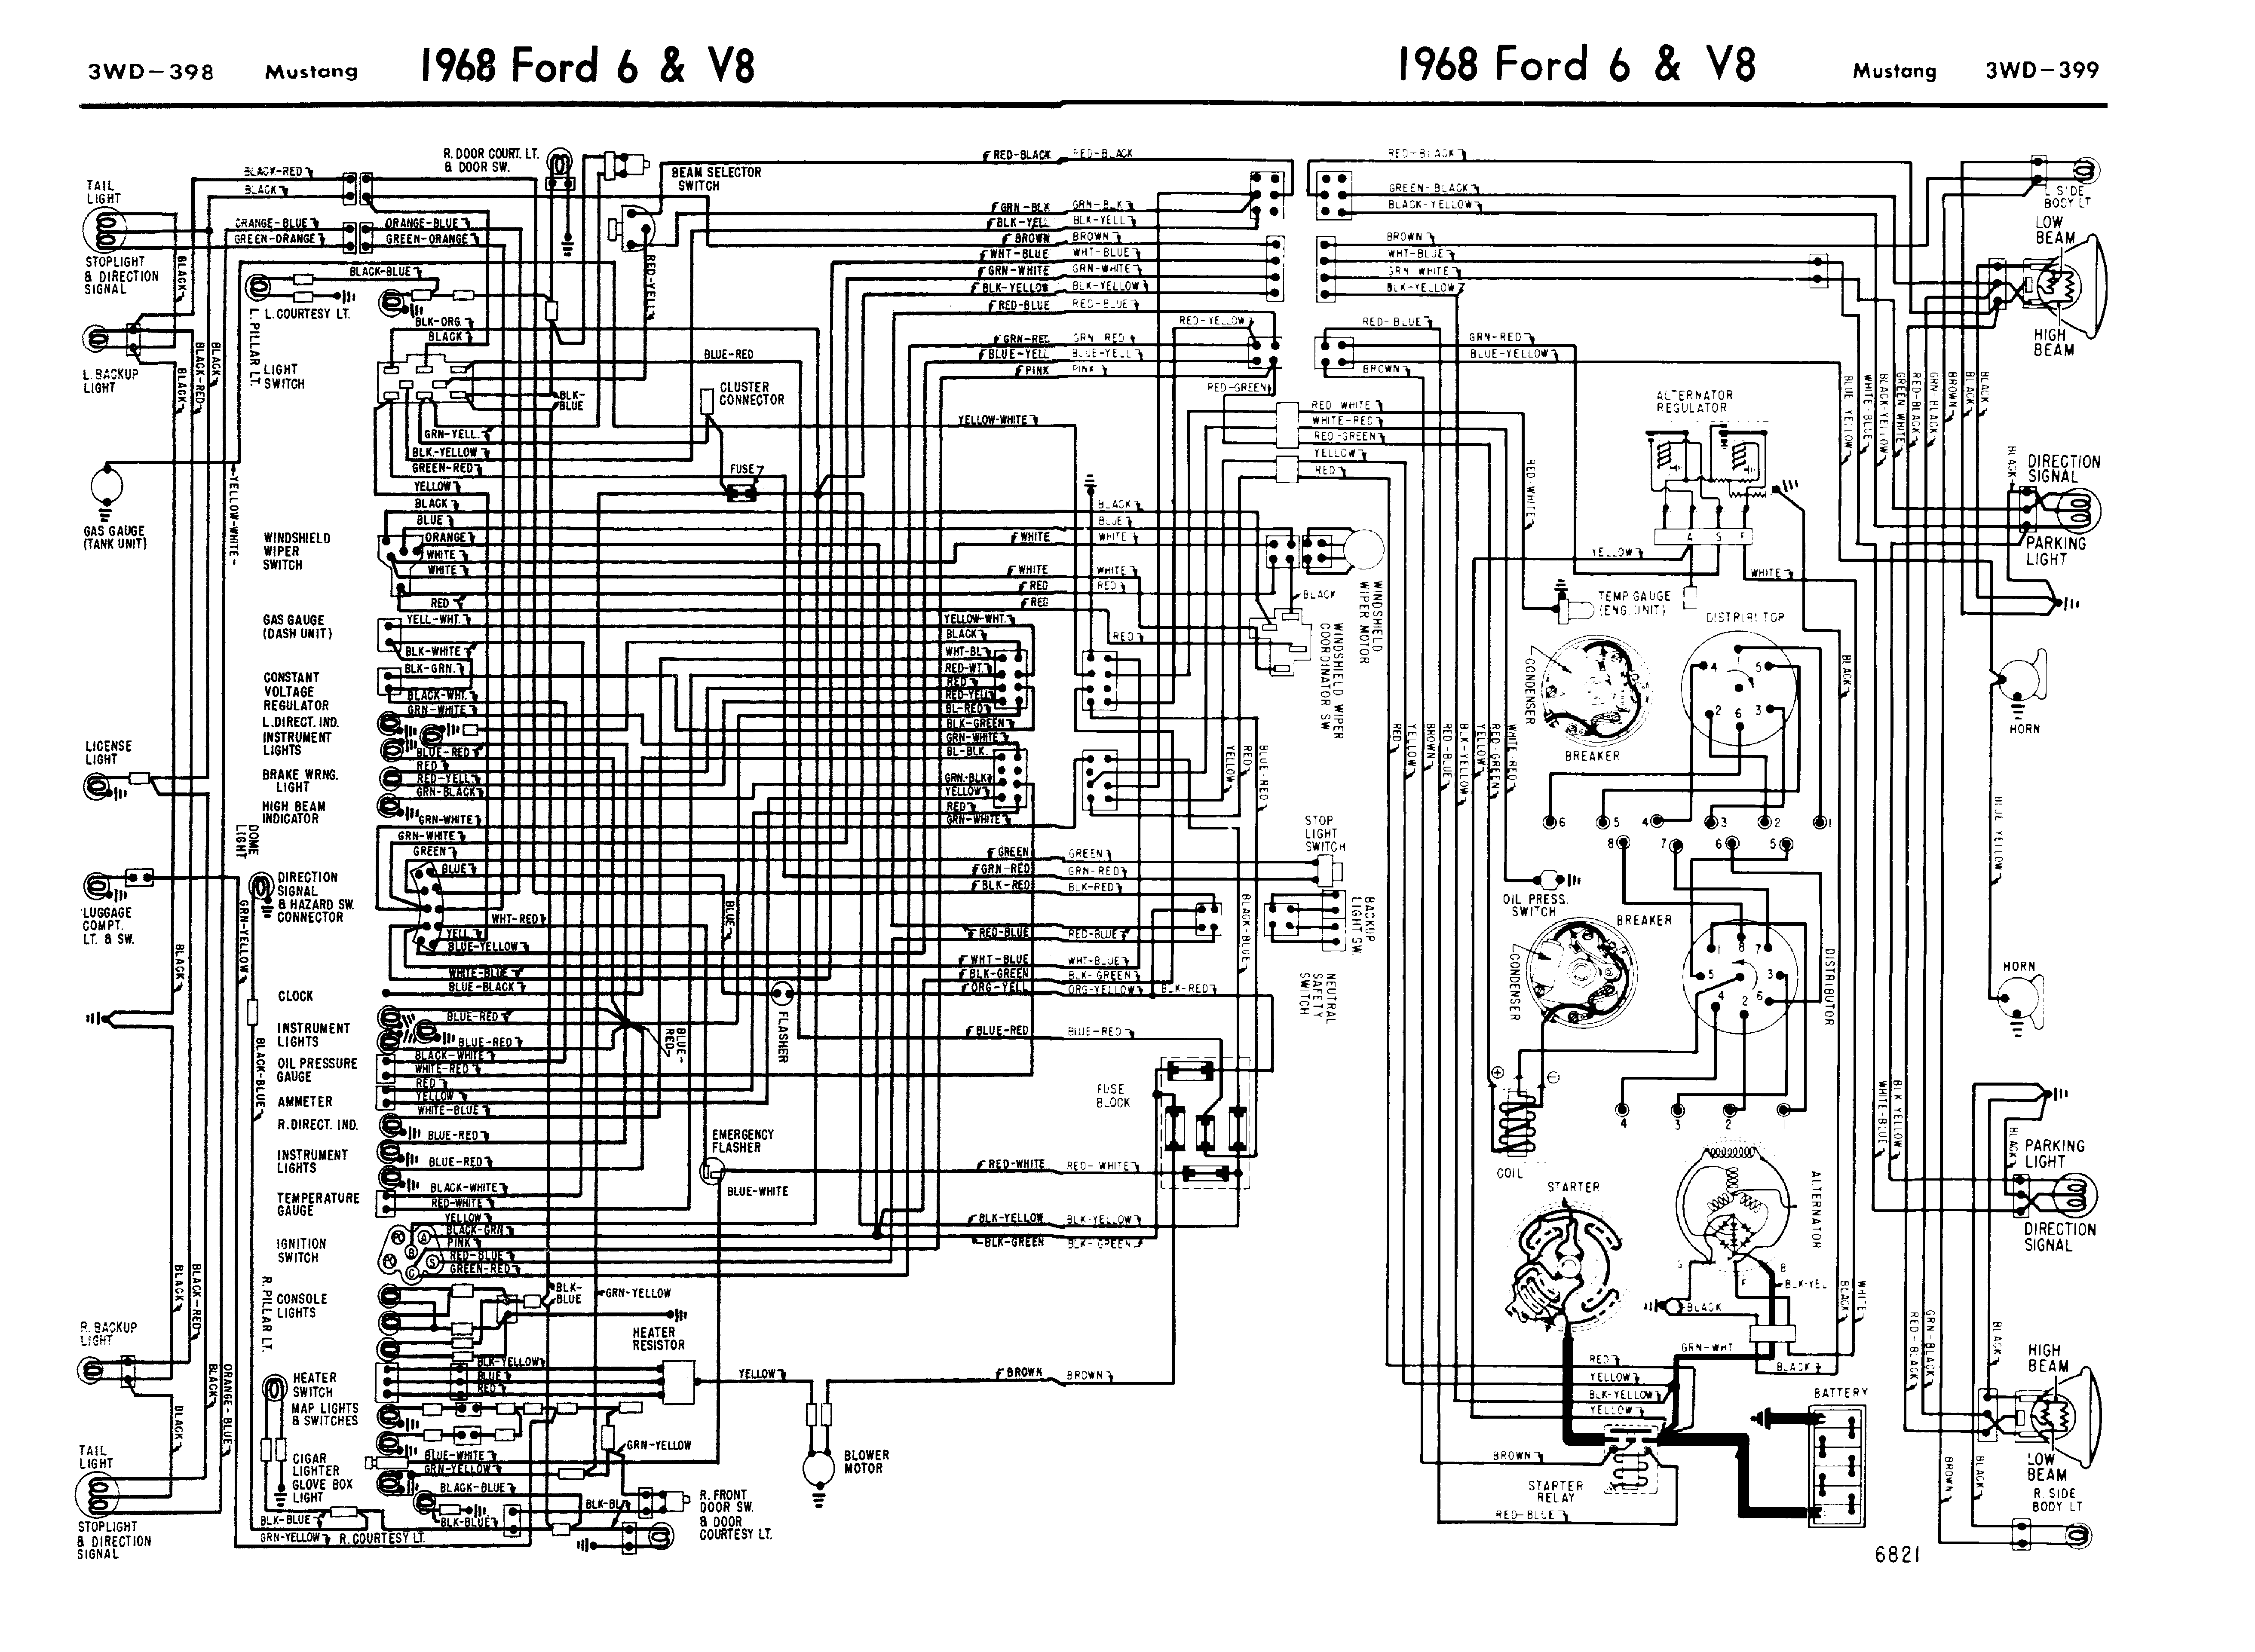 68mustang_wiring_guide 1968 mustang wiring diagrams evolving software 1968 mustang ignition wiring diagram at n-0.co